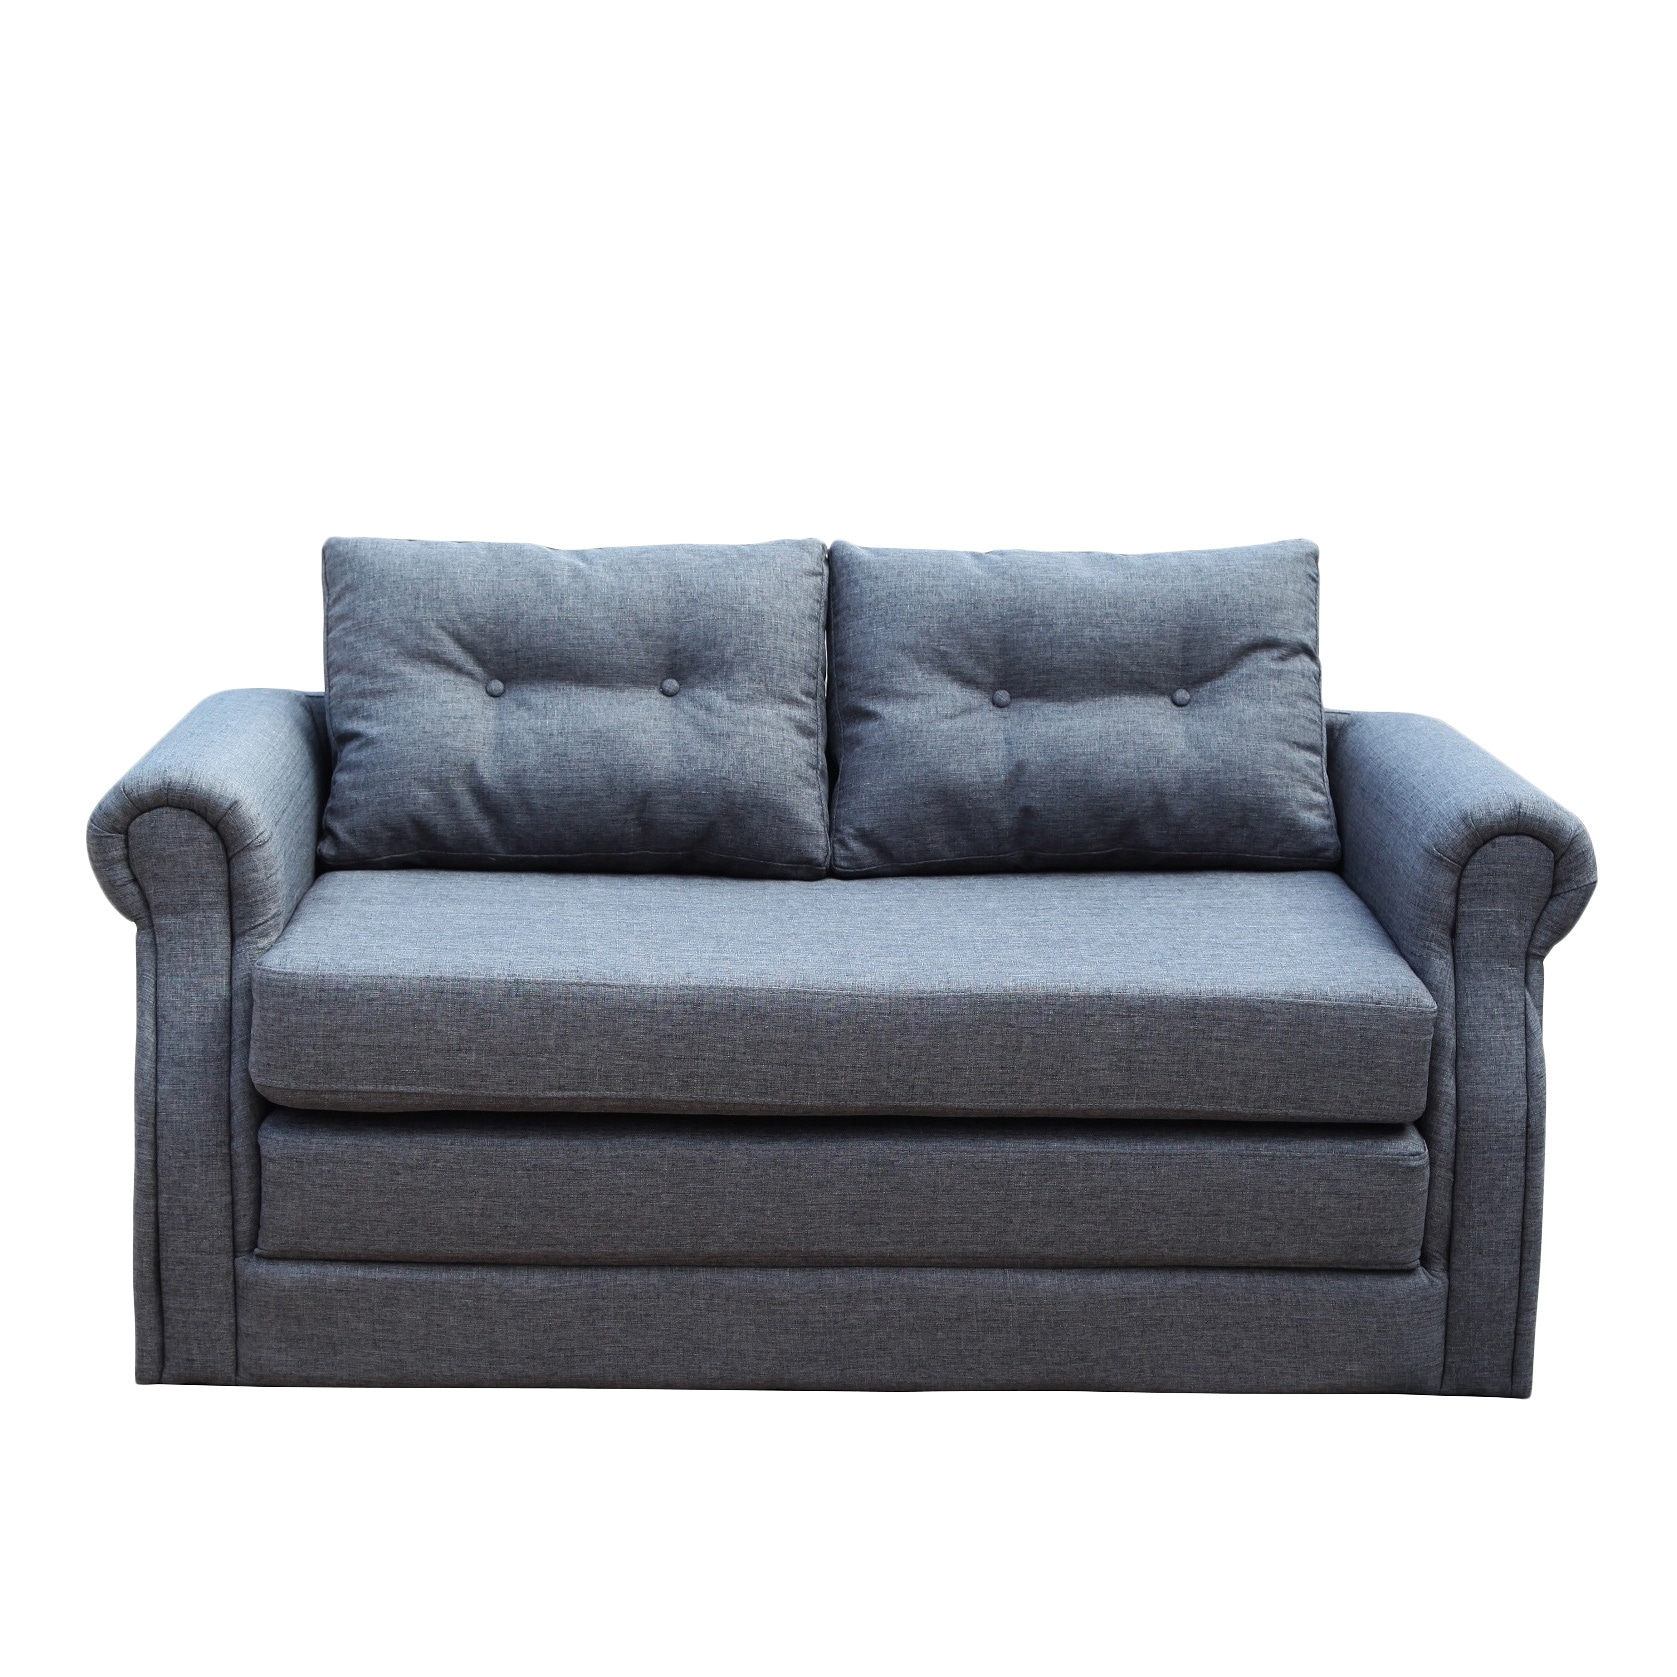 Lucca Dark Grey Convertible Loveseat Sleeper